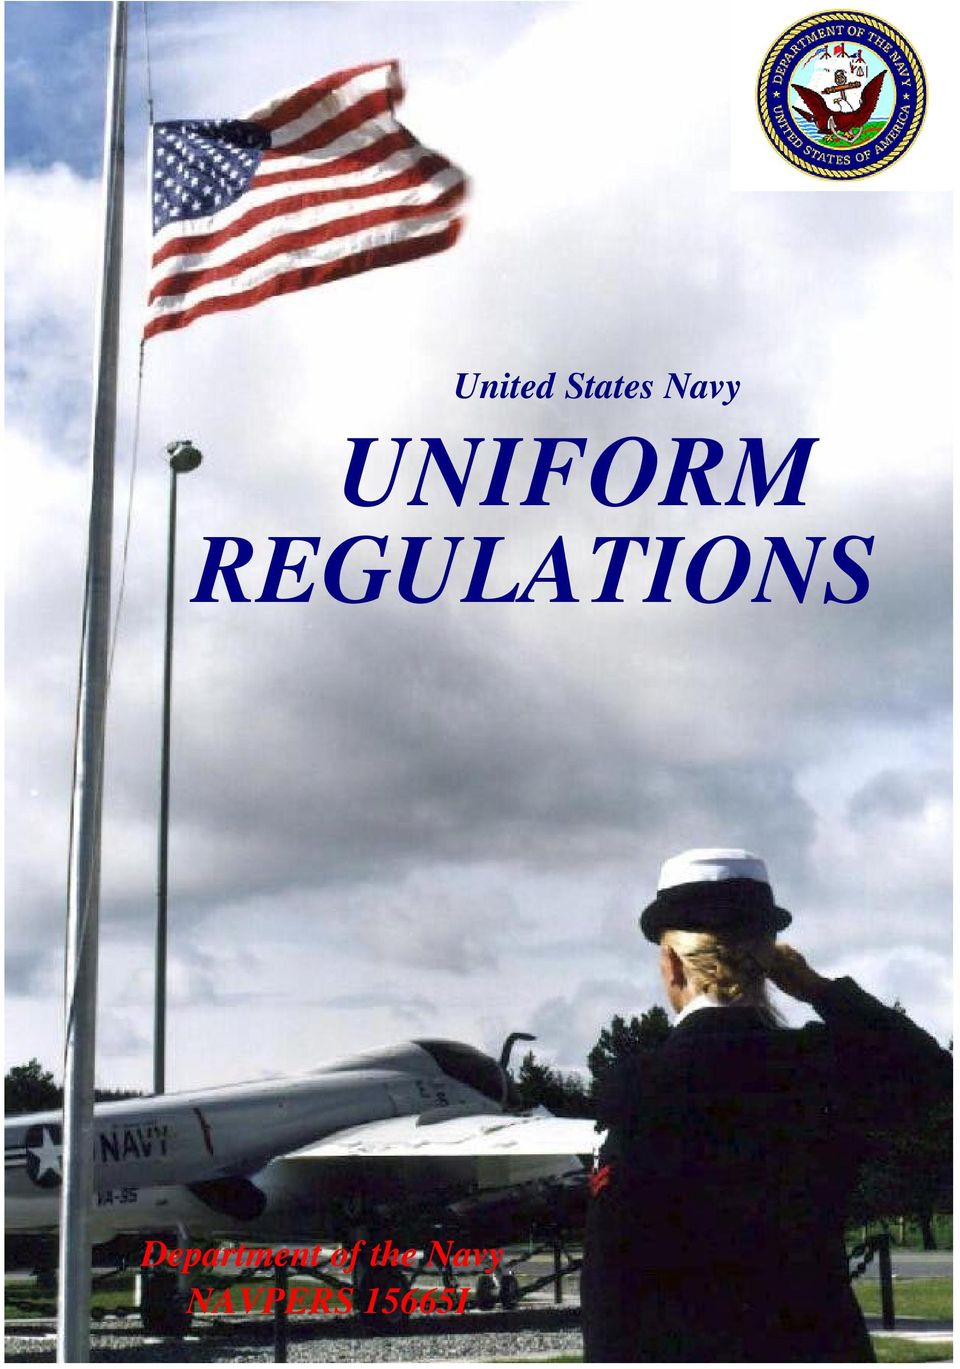 United States Navy UNIFORM REGULATIONS  Department of the